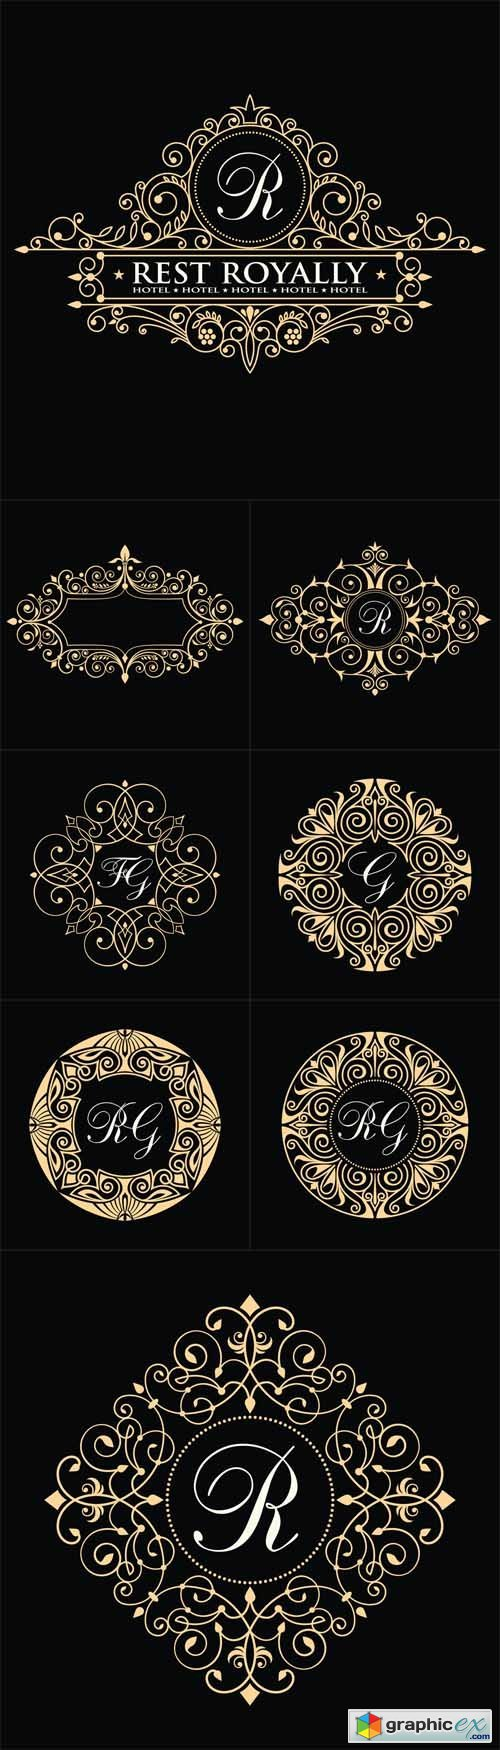 Vintage luxury emblem. Business sign, monogram identity for Restaurant, Hotel, Cafe